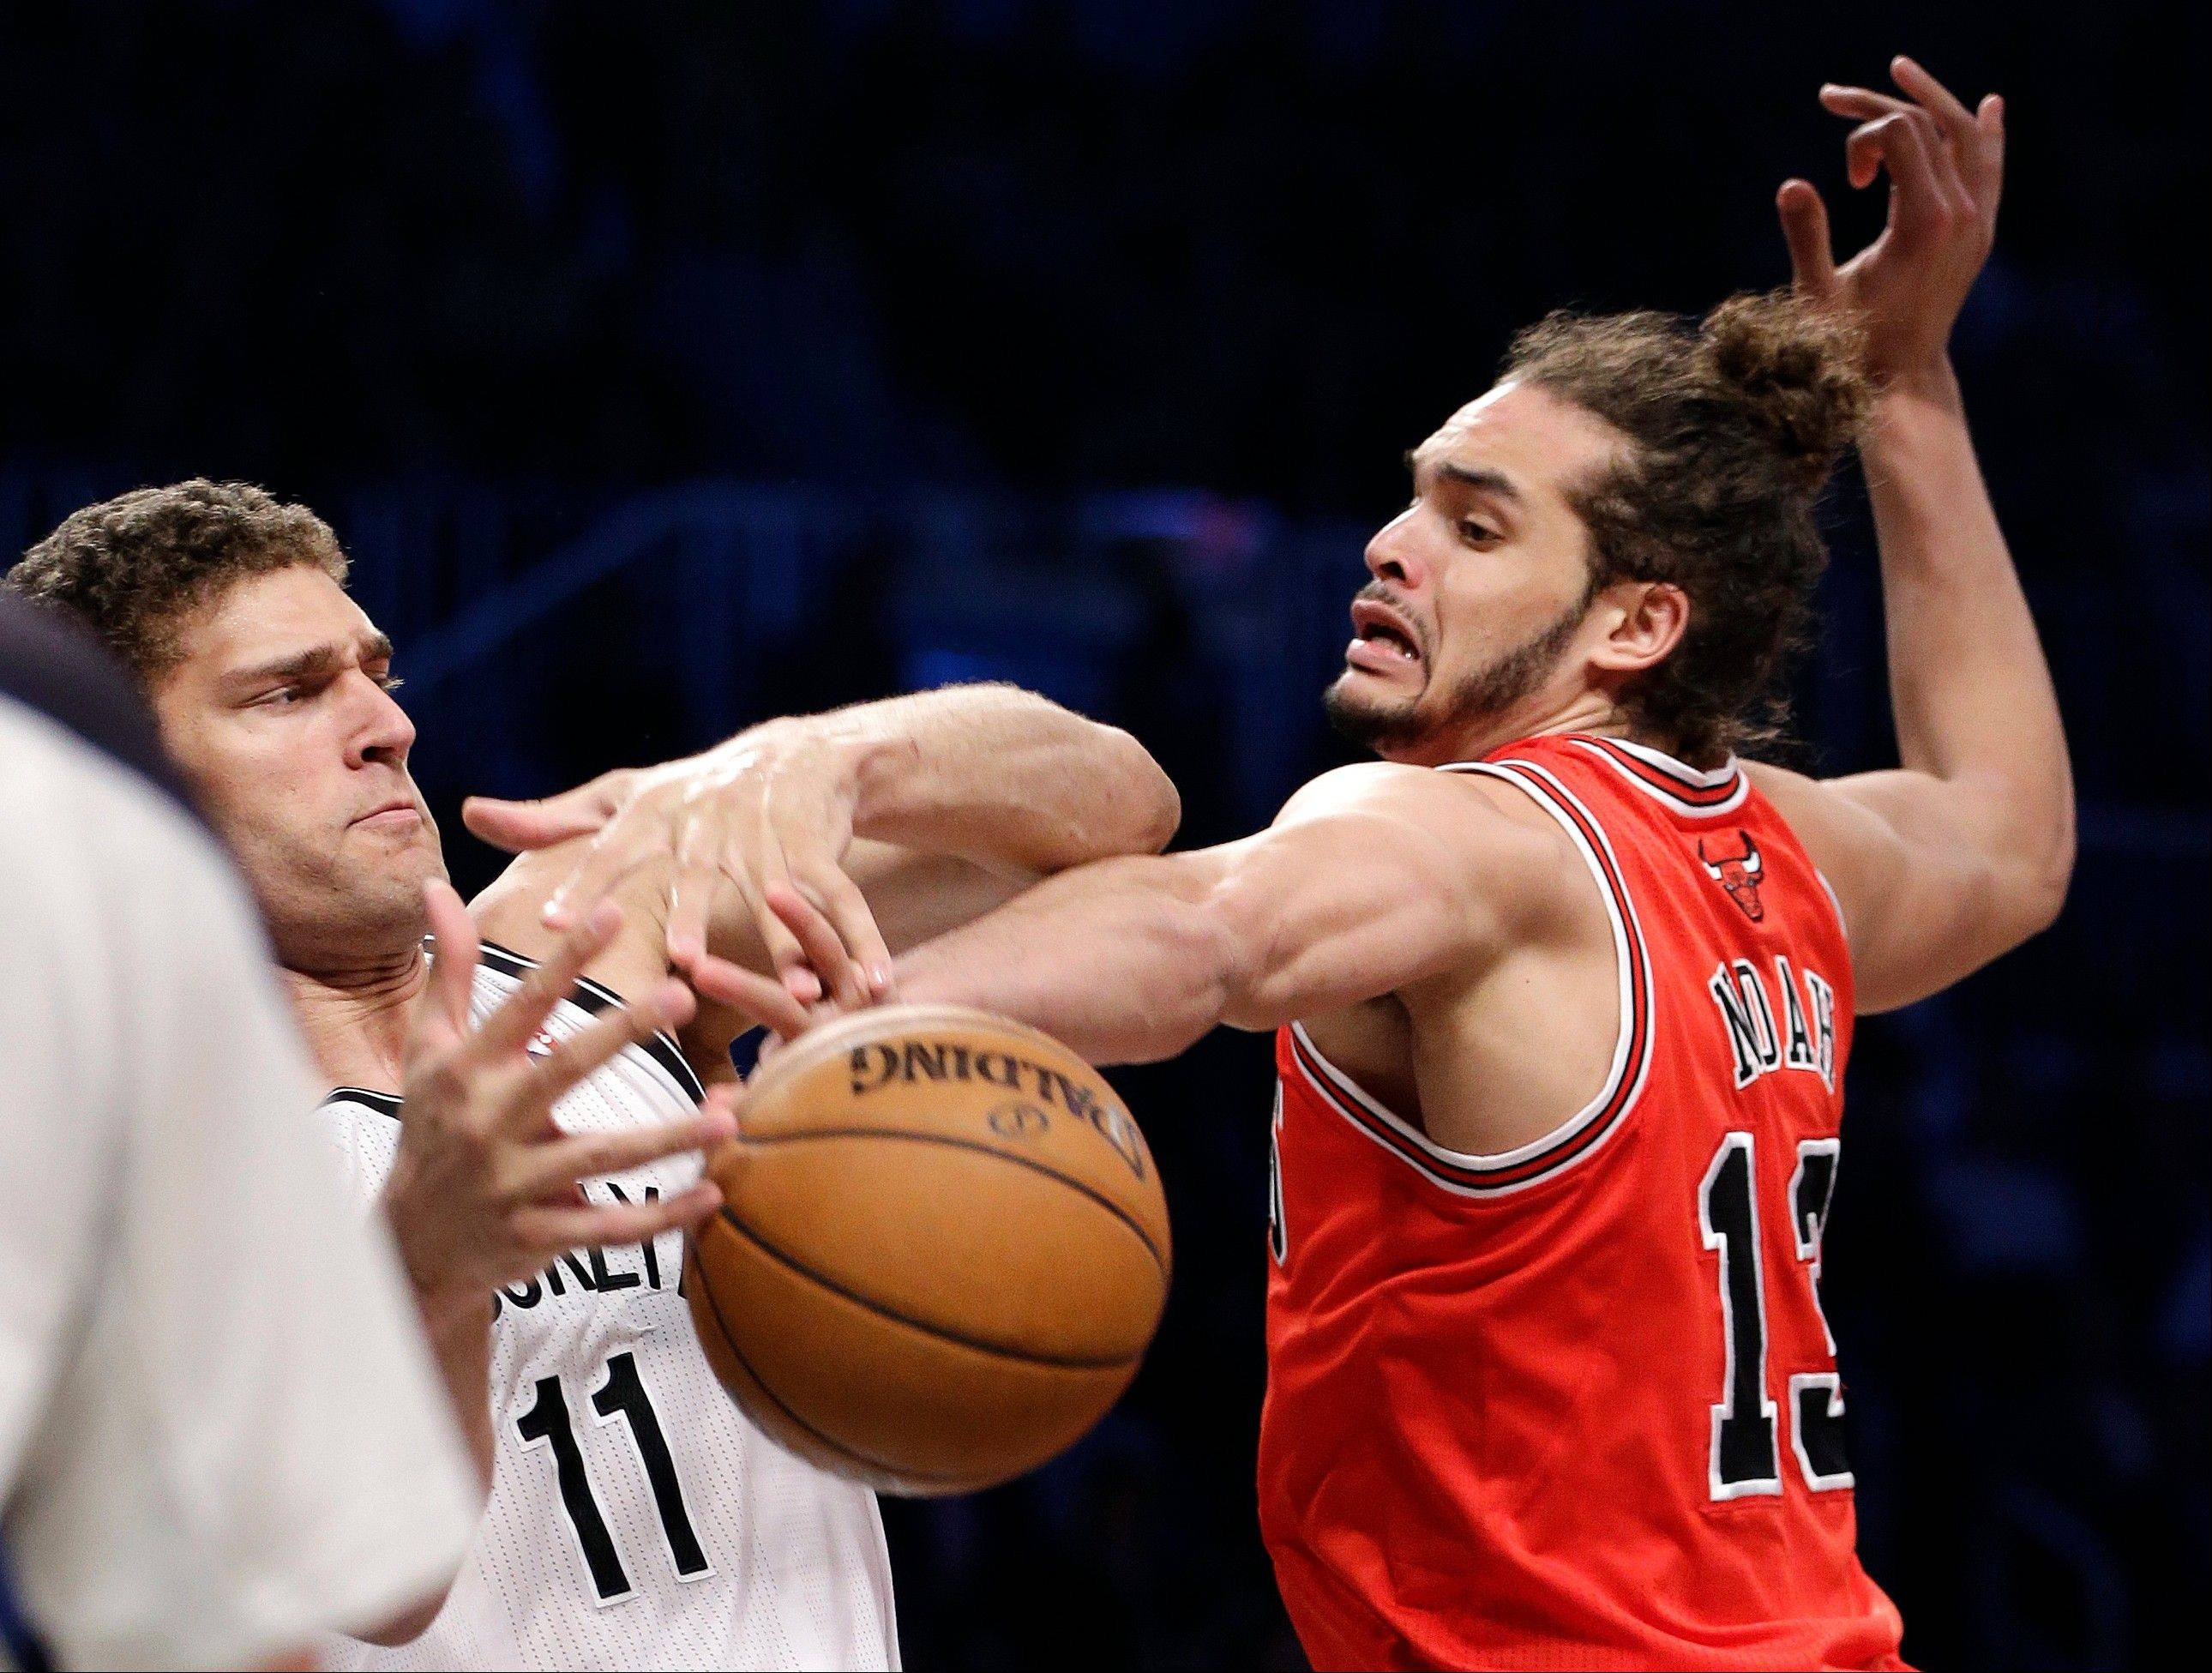 Joakim Noah (13) steals the ball from Nets center Brook Lopez (11) in the first half of Game 5 of their first-round playoff series on Monday.